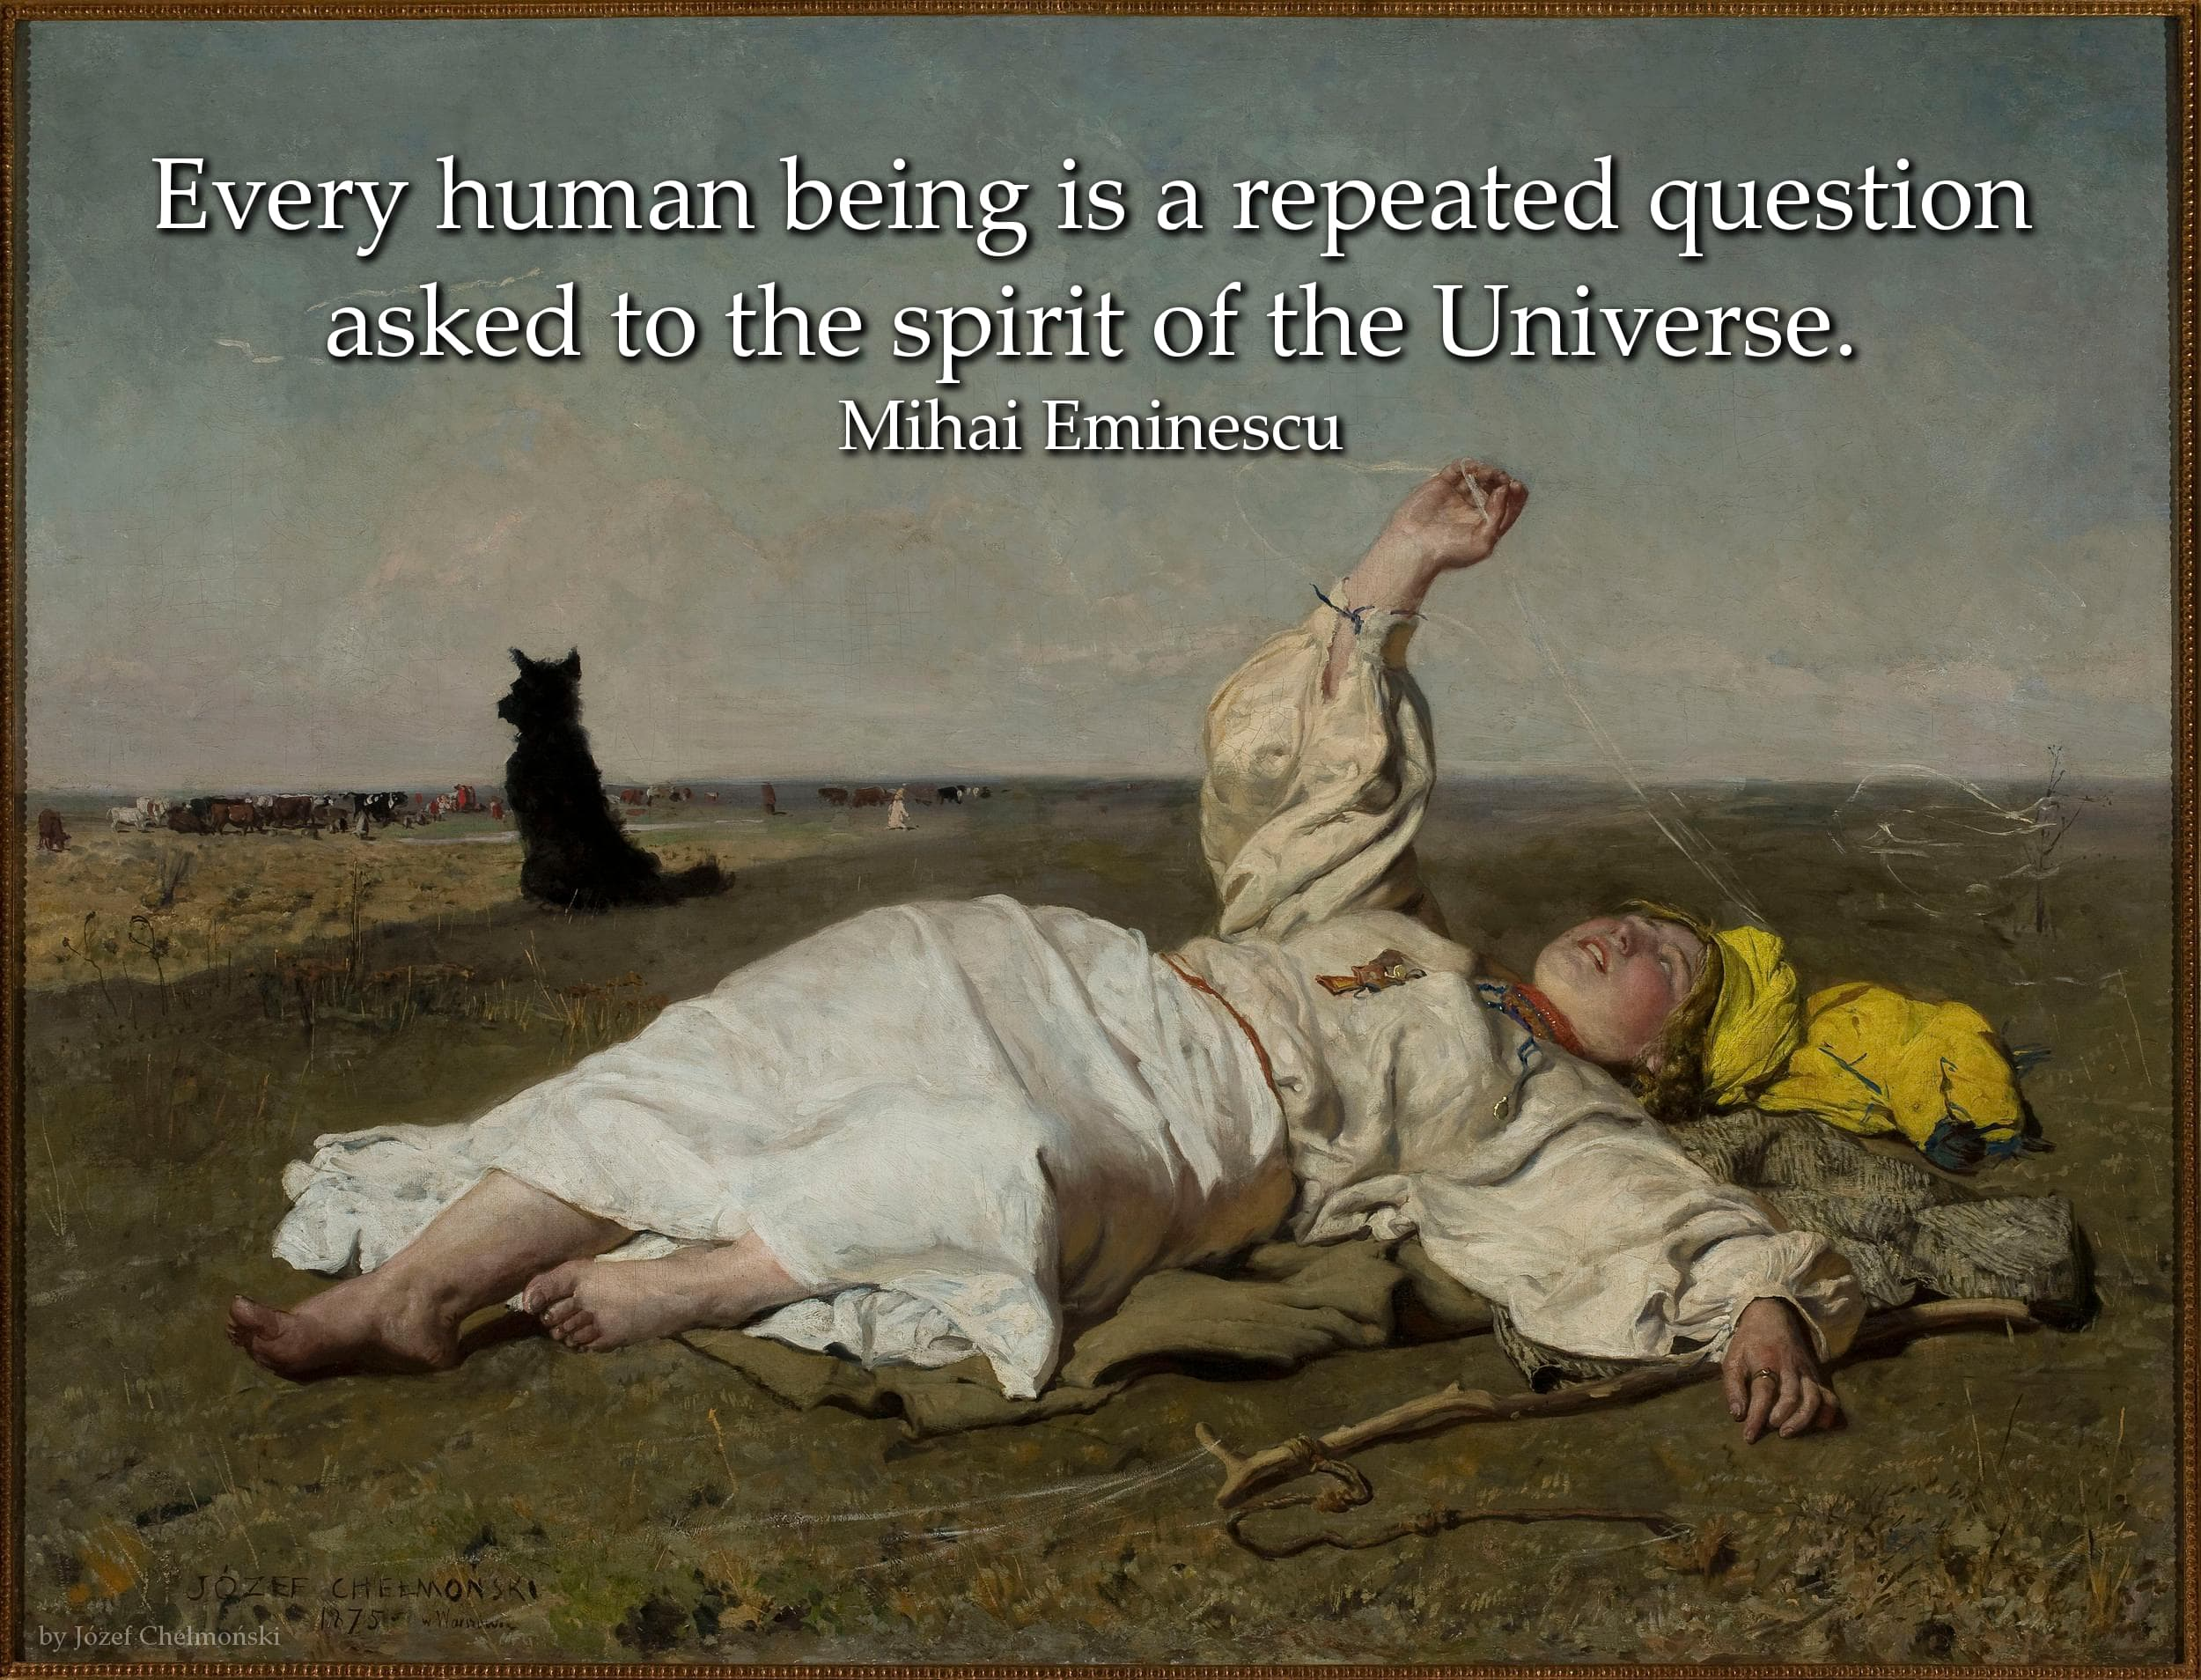 Mihai Eminescu Quote: Every human being is a repeated question asked to the...